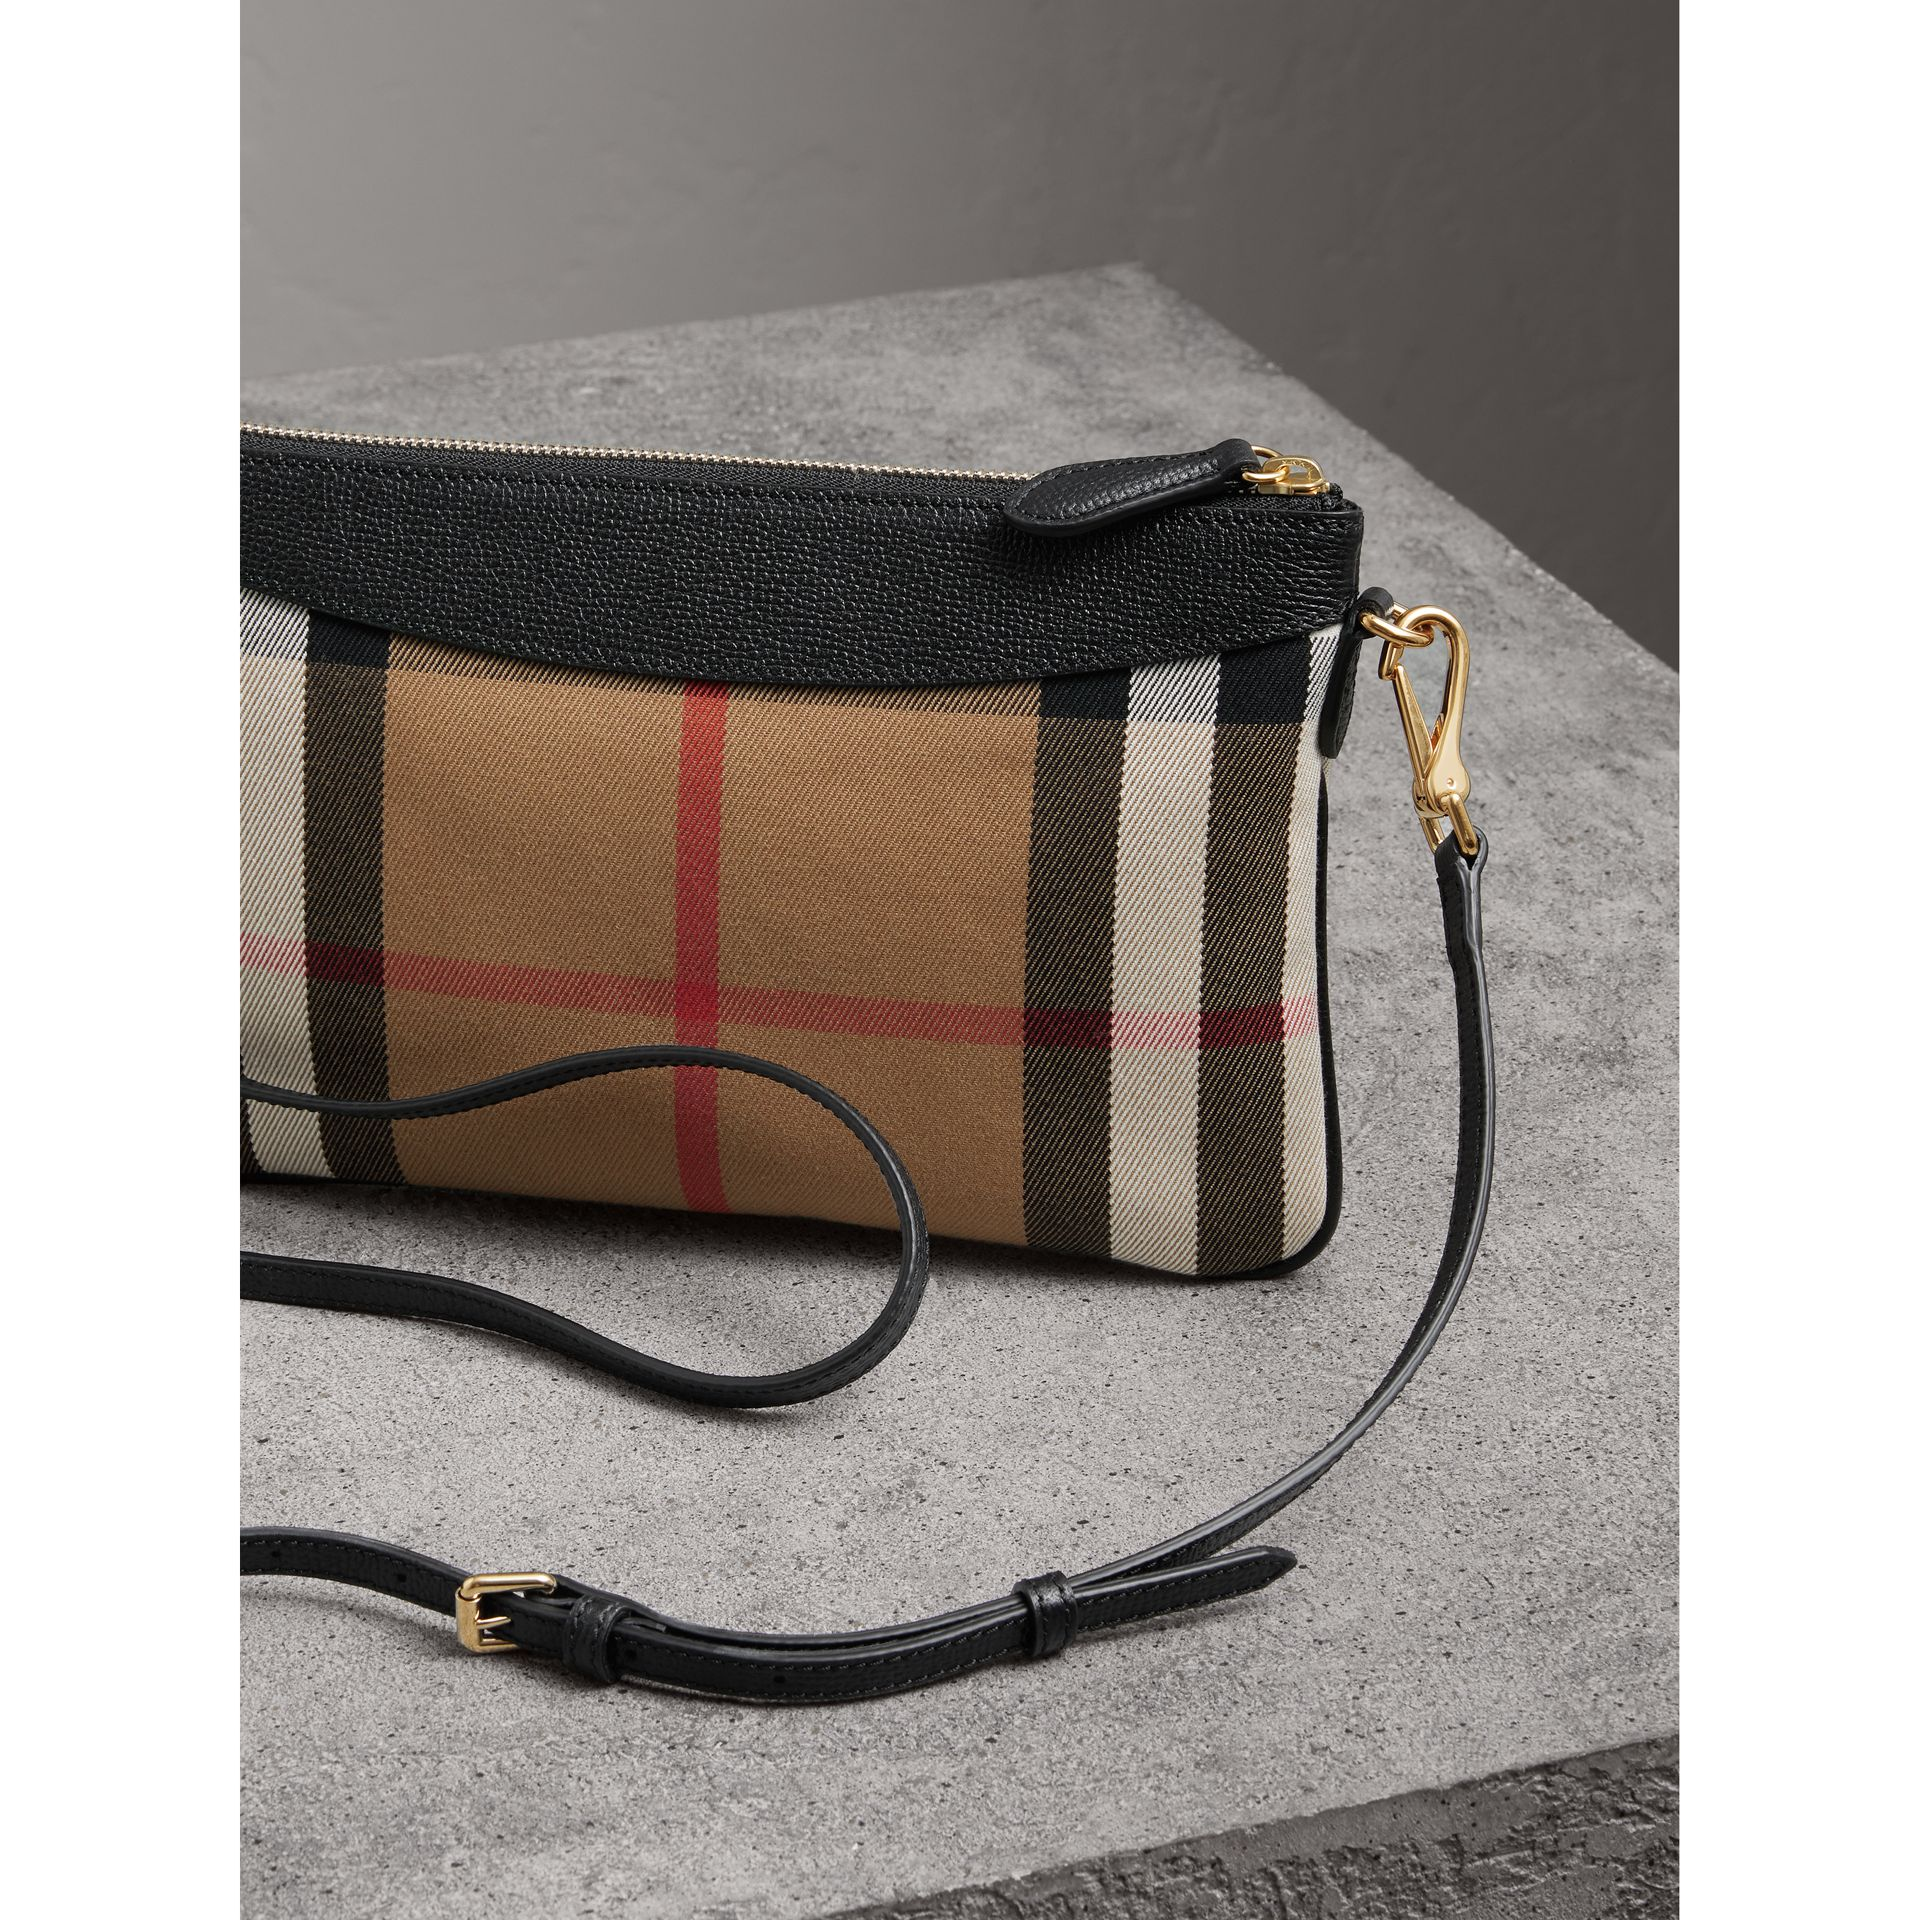 House Check and Leather Clutch Bag in Black - Women | Burberry United Kingdom - gallery image 3